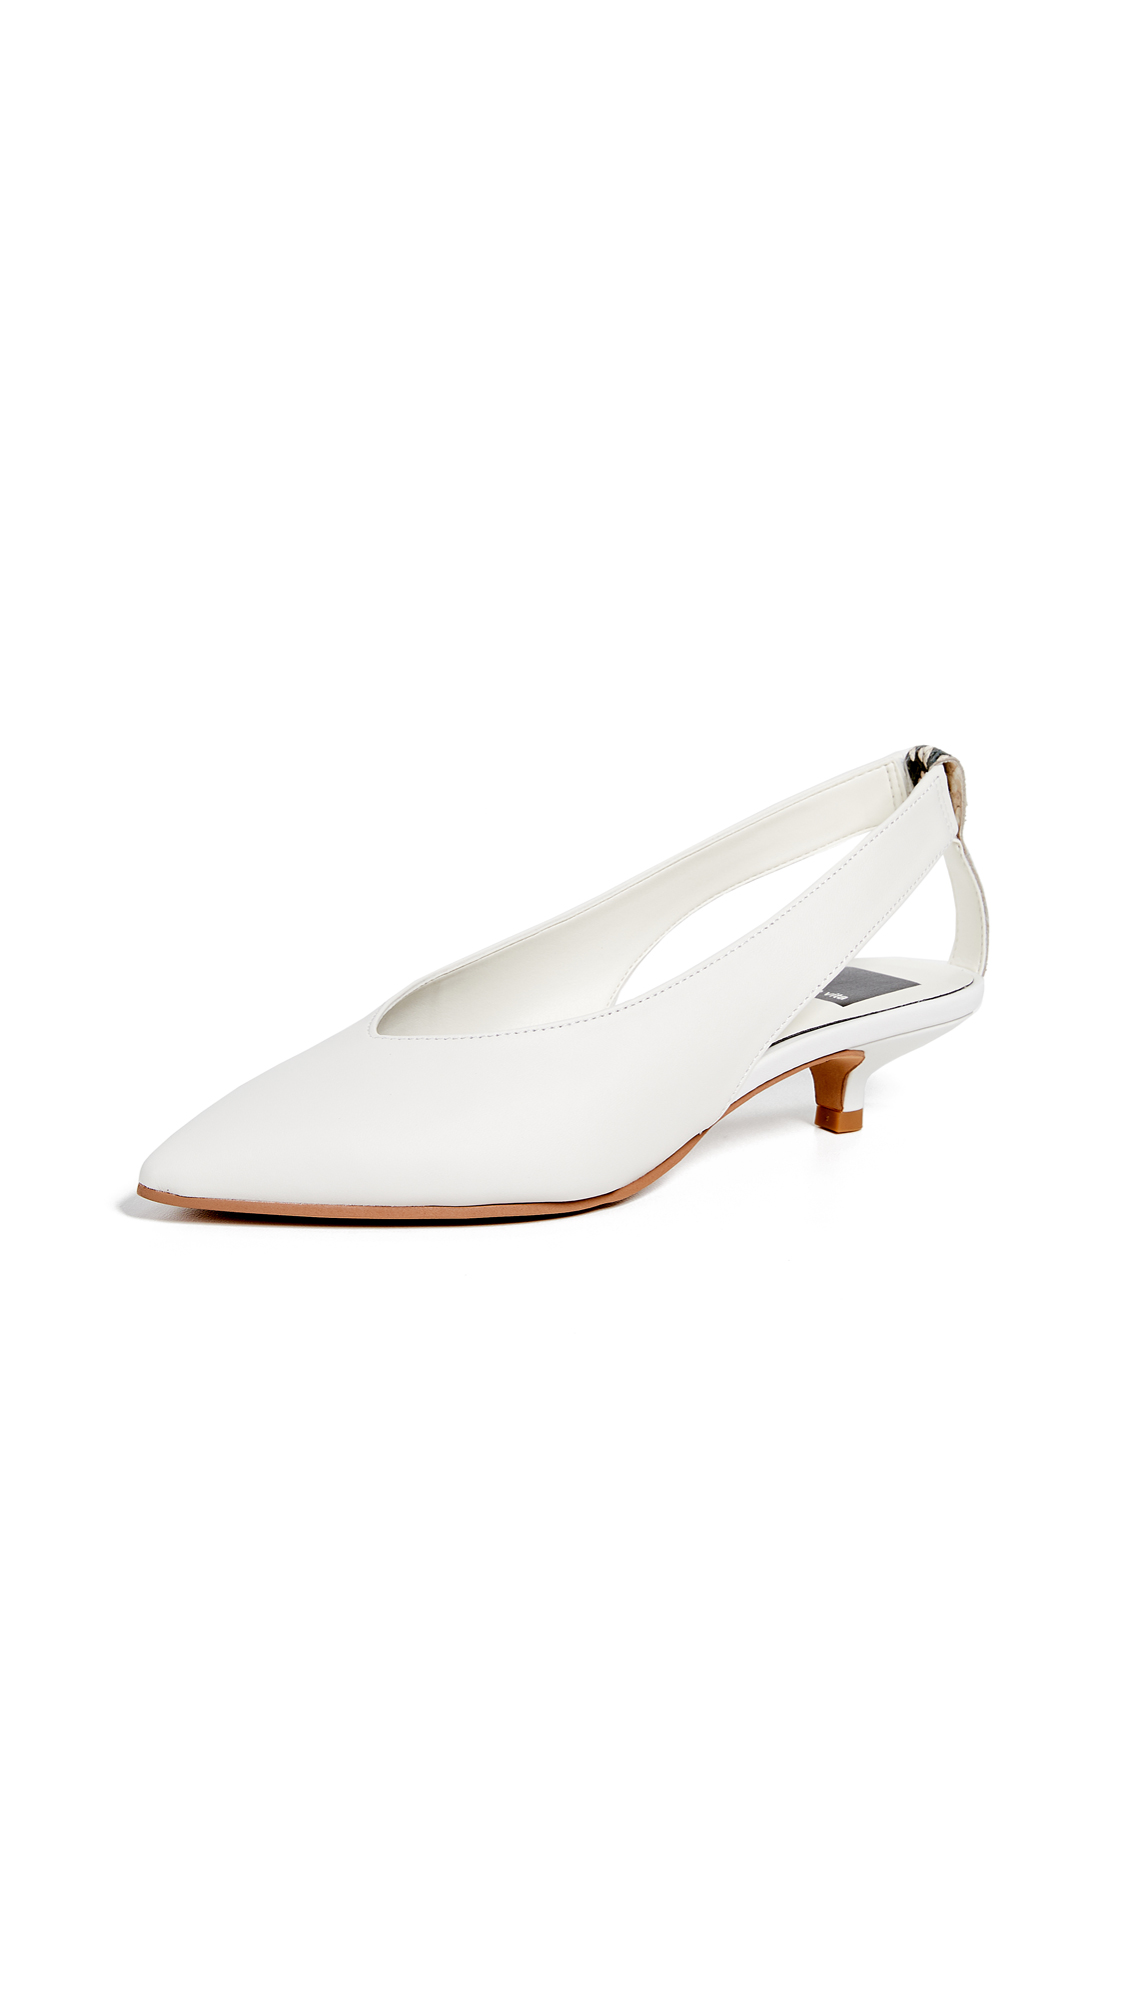 00e947c69573 Dolce Vita Snakeskin-Print Slingback Leather Kitten-Heel Pump In Off White